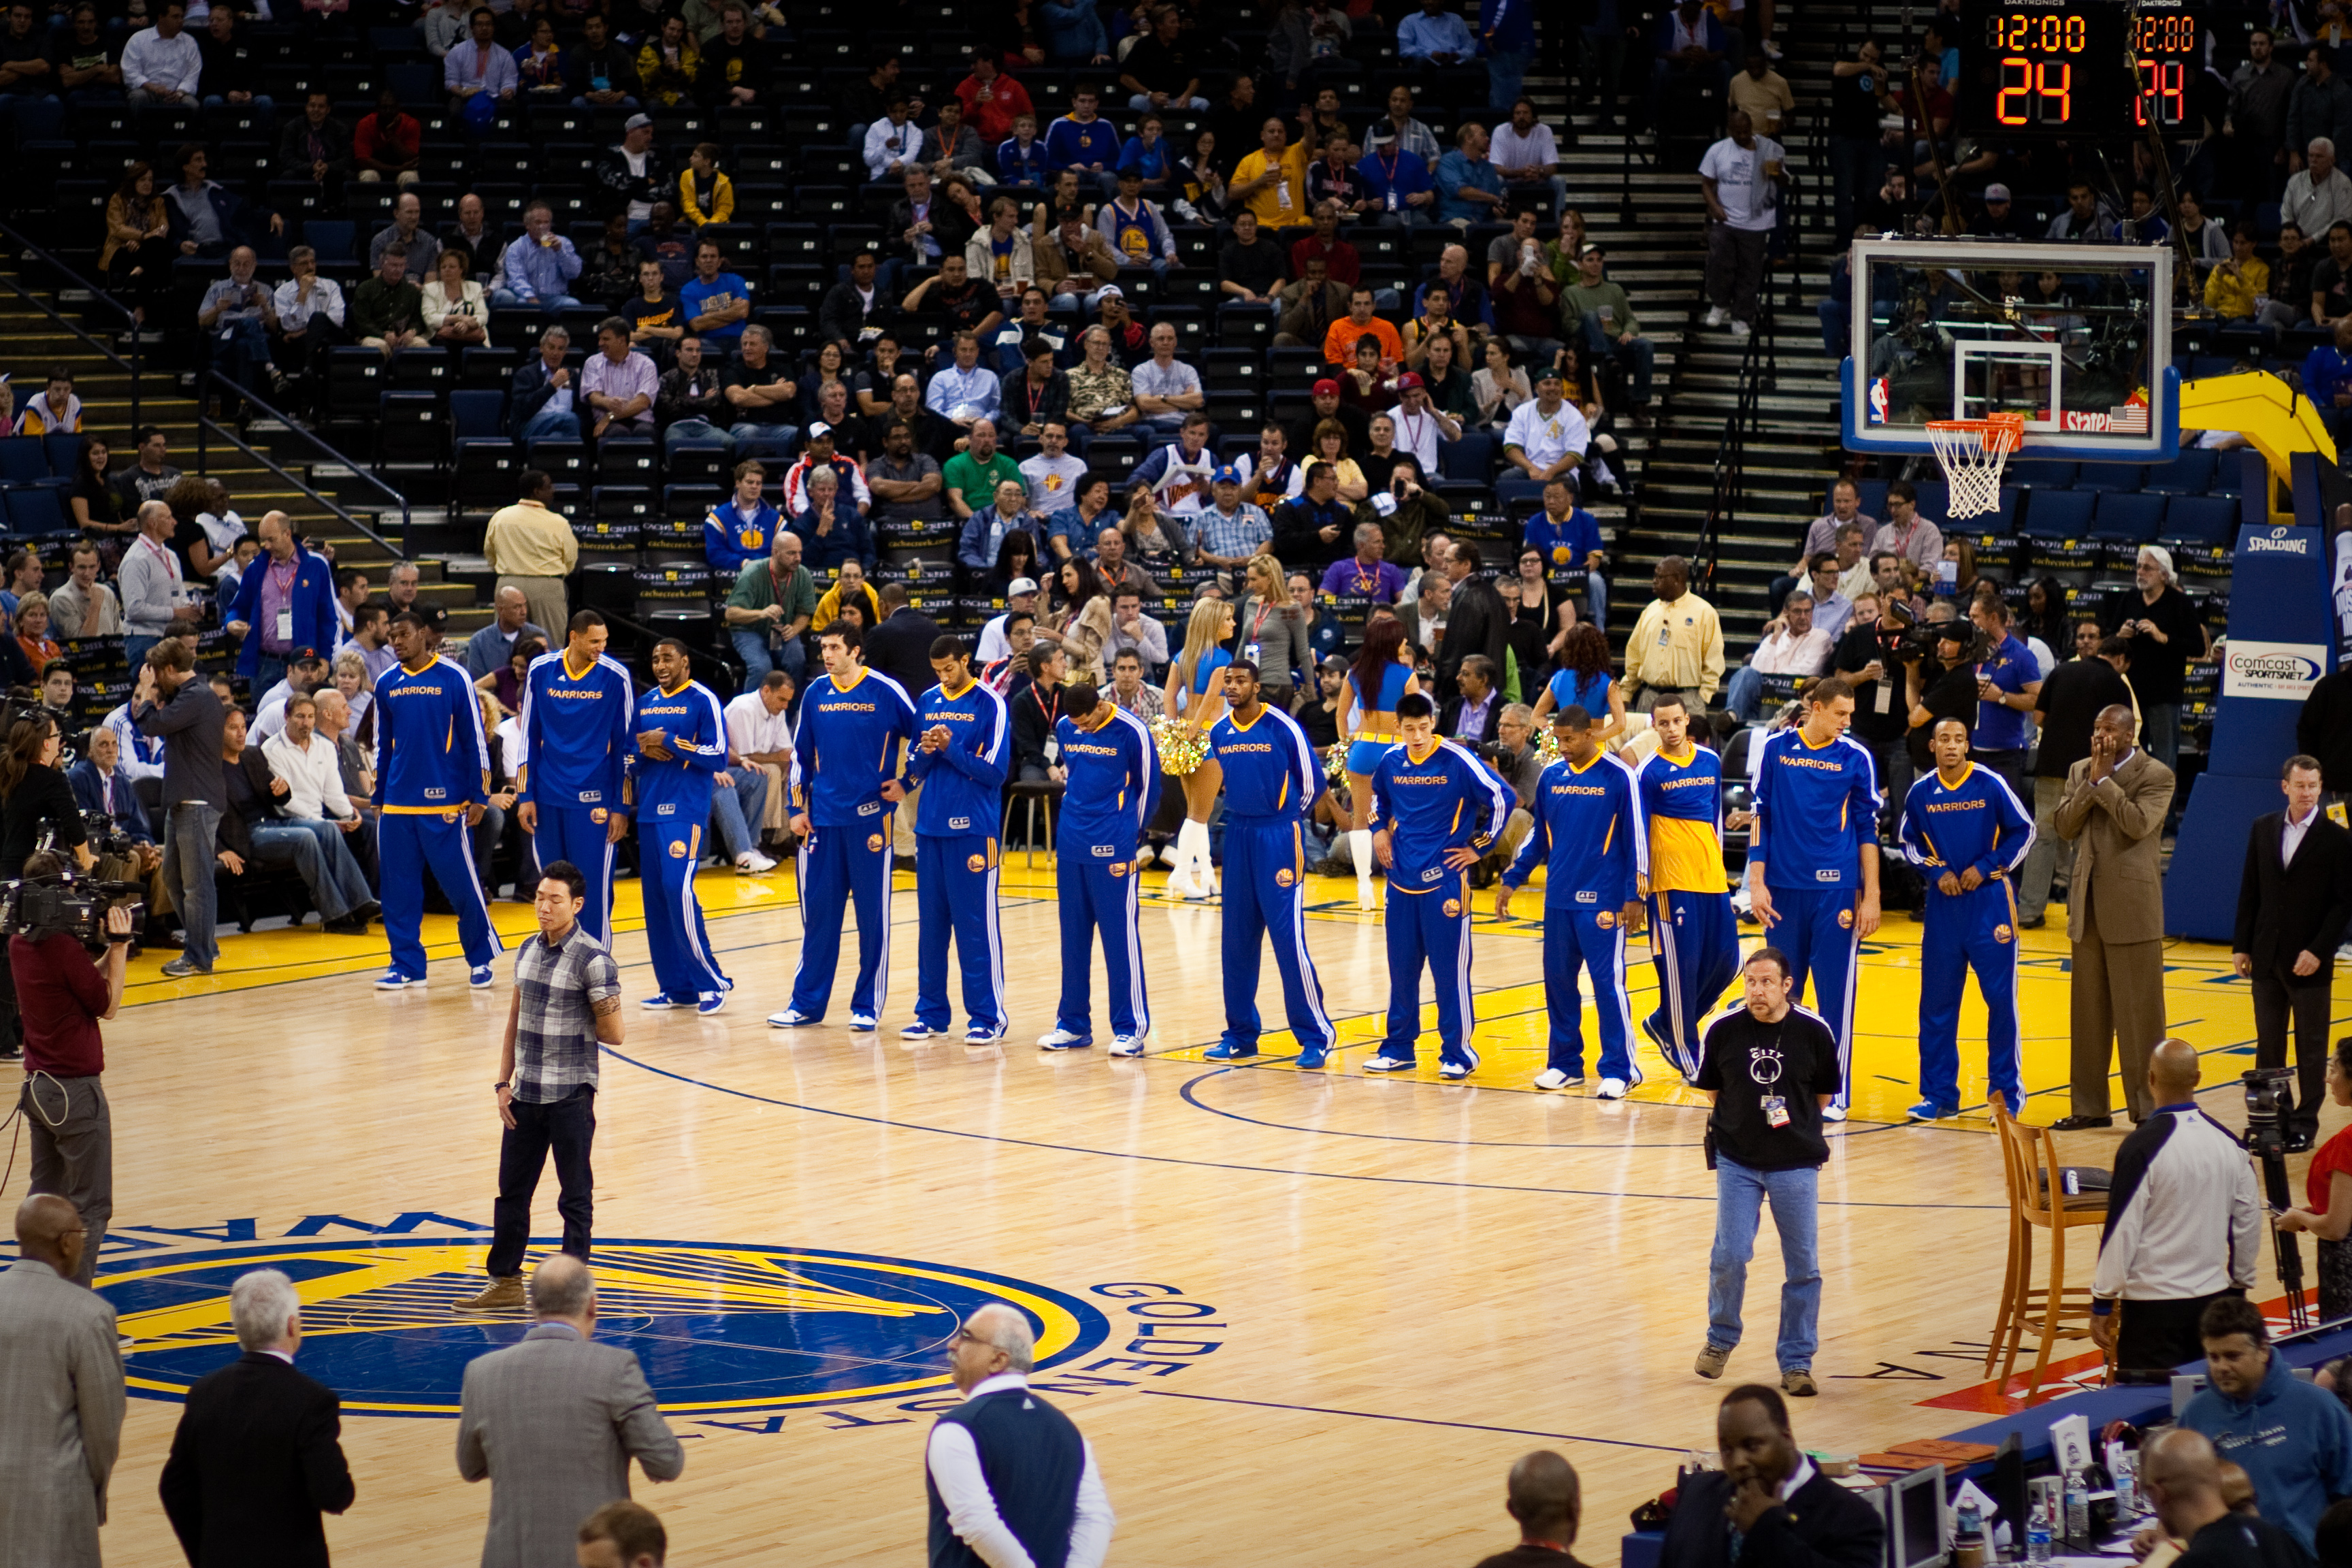 Golden_State_Warriors_line_up_pregame_vs_Pistons_2